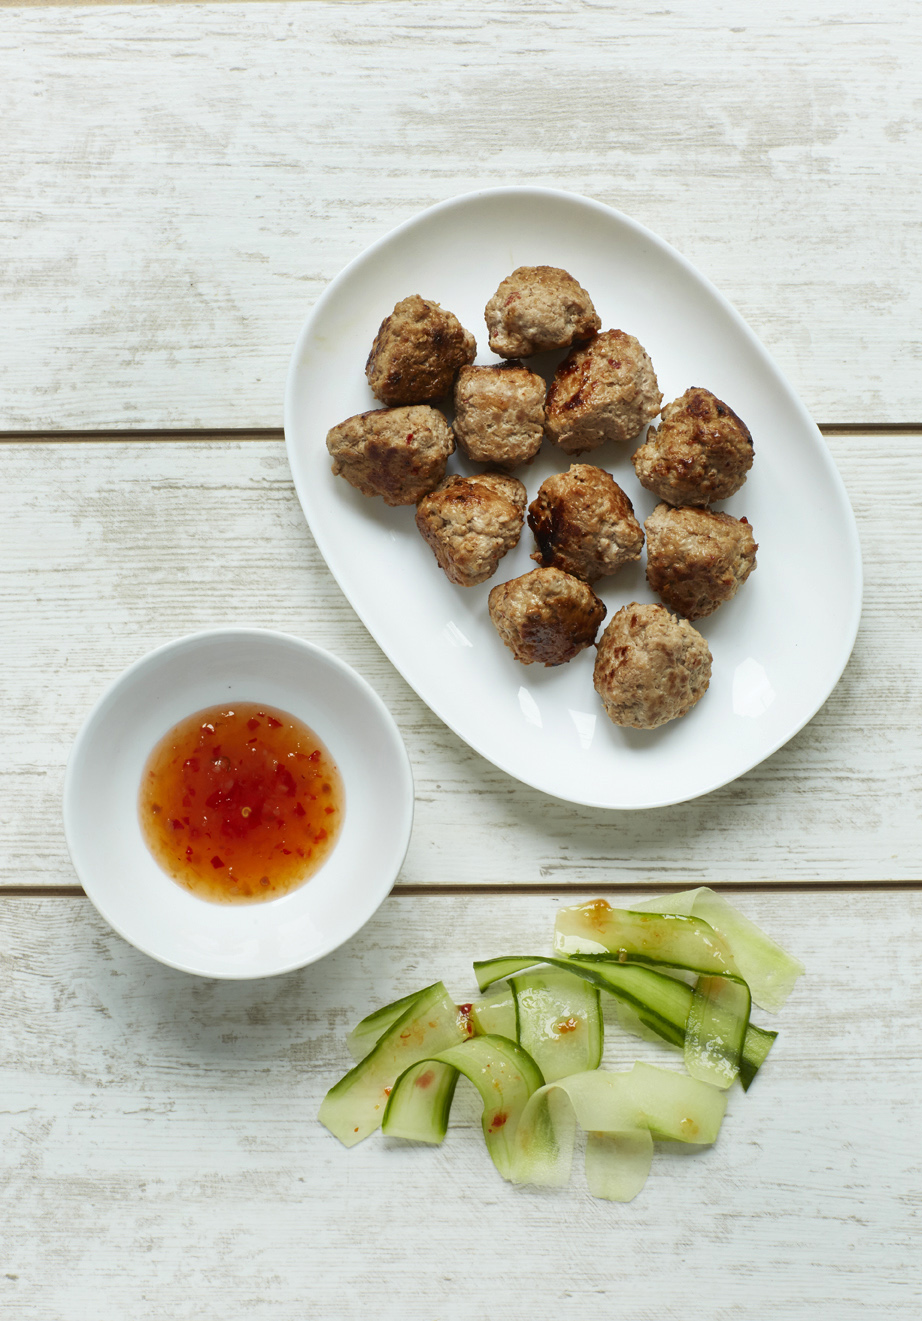 Thai_Chicken_Balls_0010.jpg